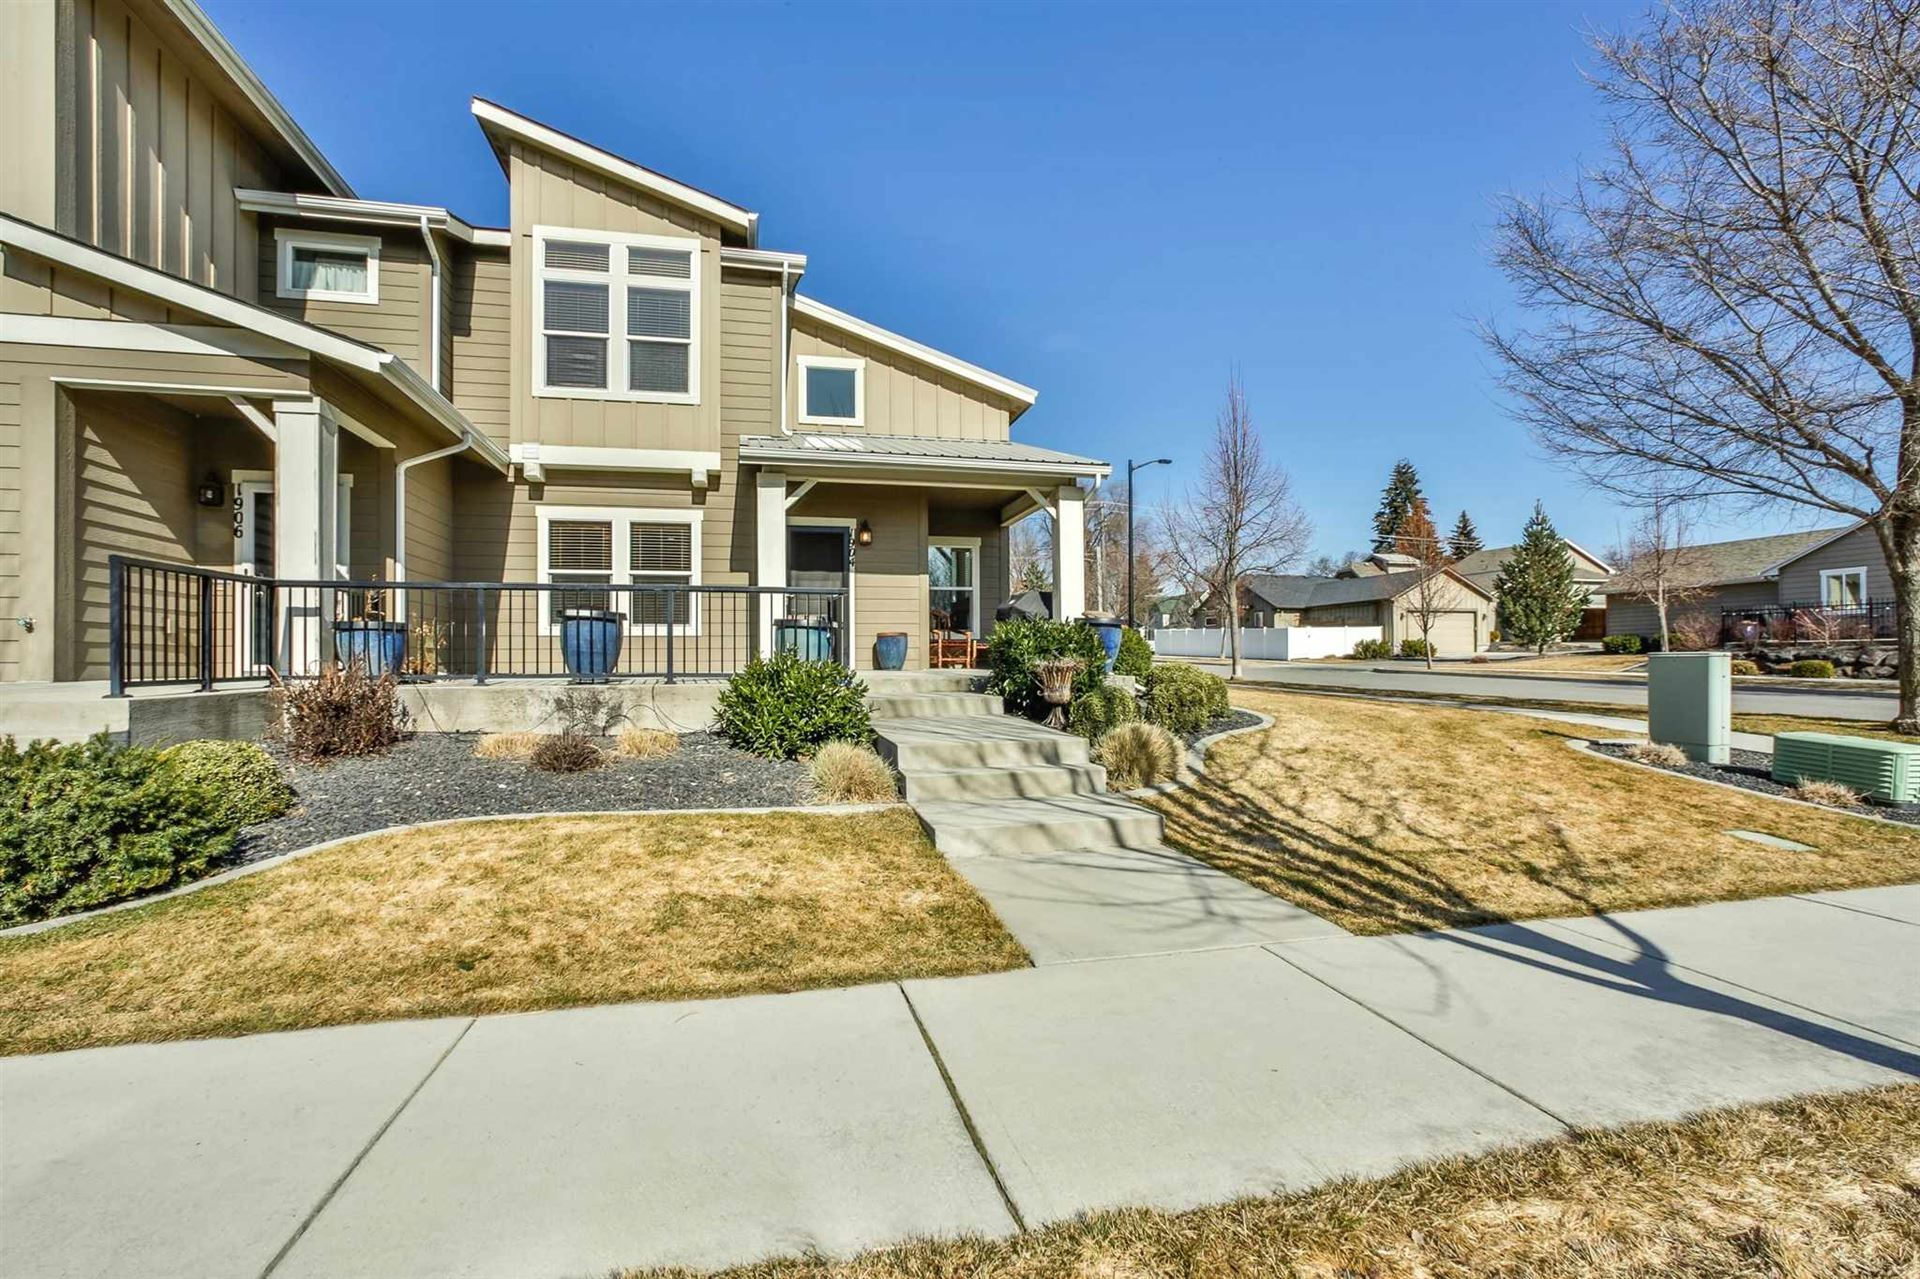 1904 W Summit Pkwy, Spokane, WA 99201 - #: 202112090